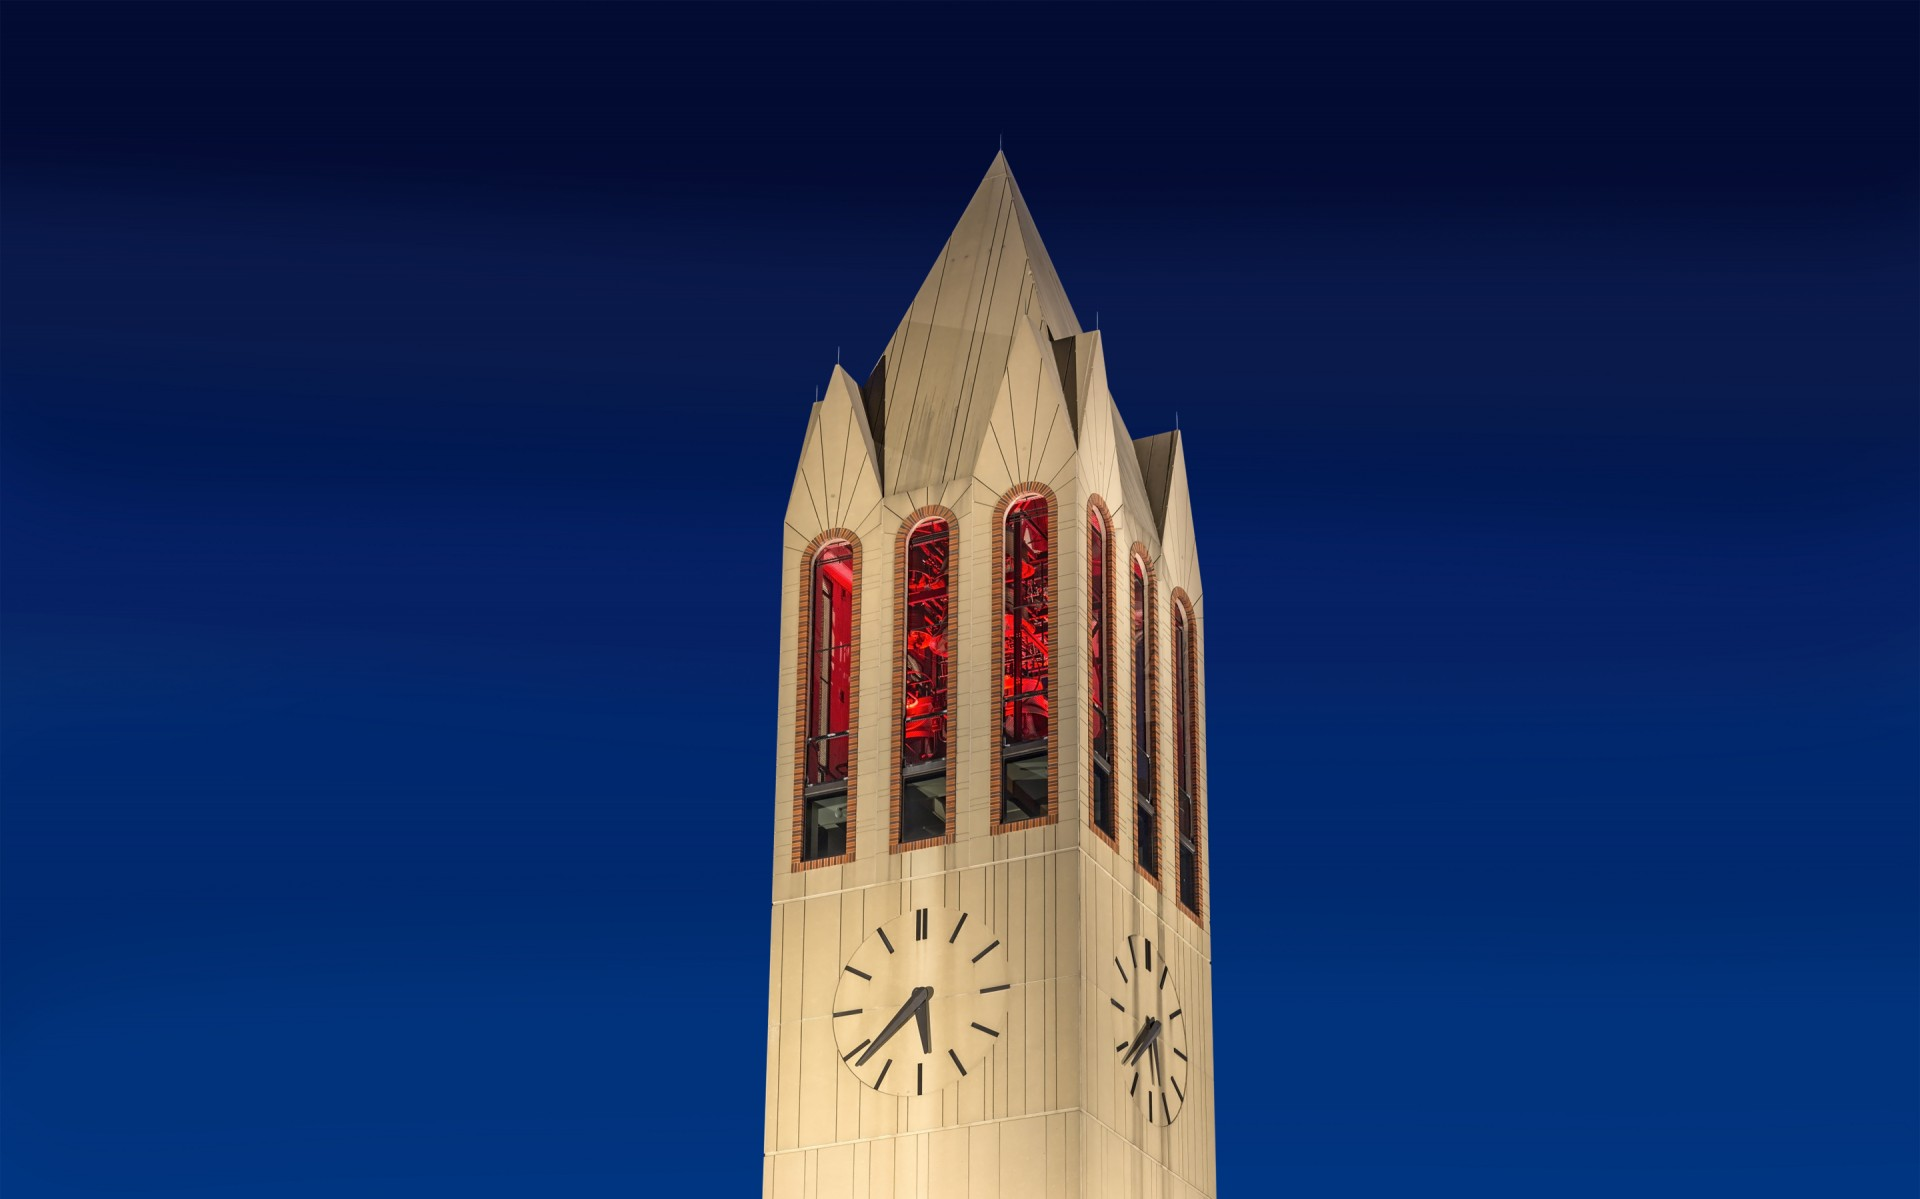 The Henningson Memorial Campanile has been an iconic centerpiece of the University of Nebraska Omaha (UNO) campus since 1989.